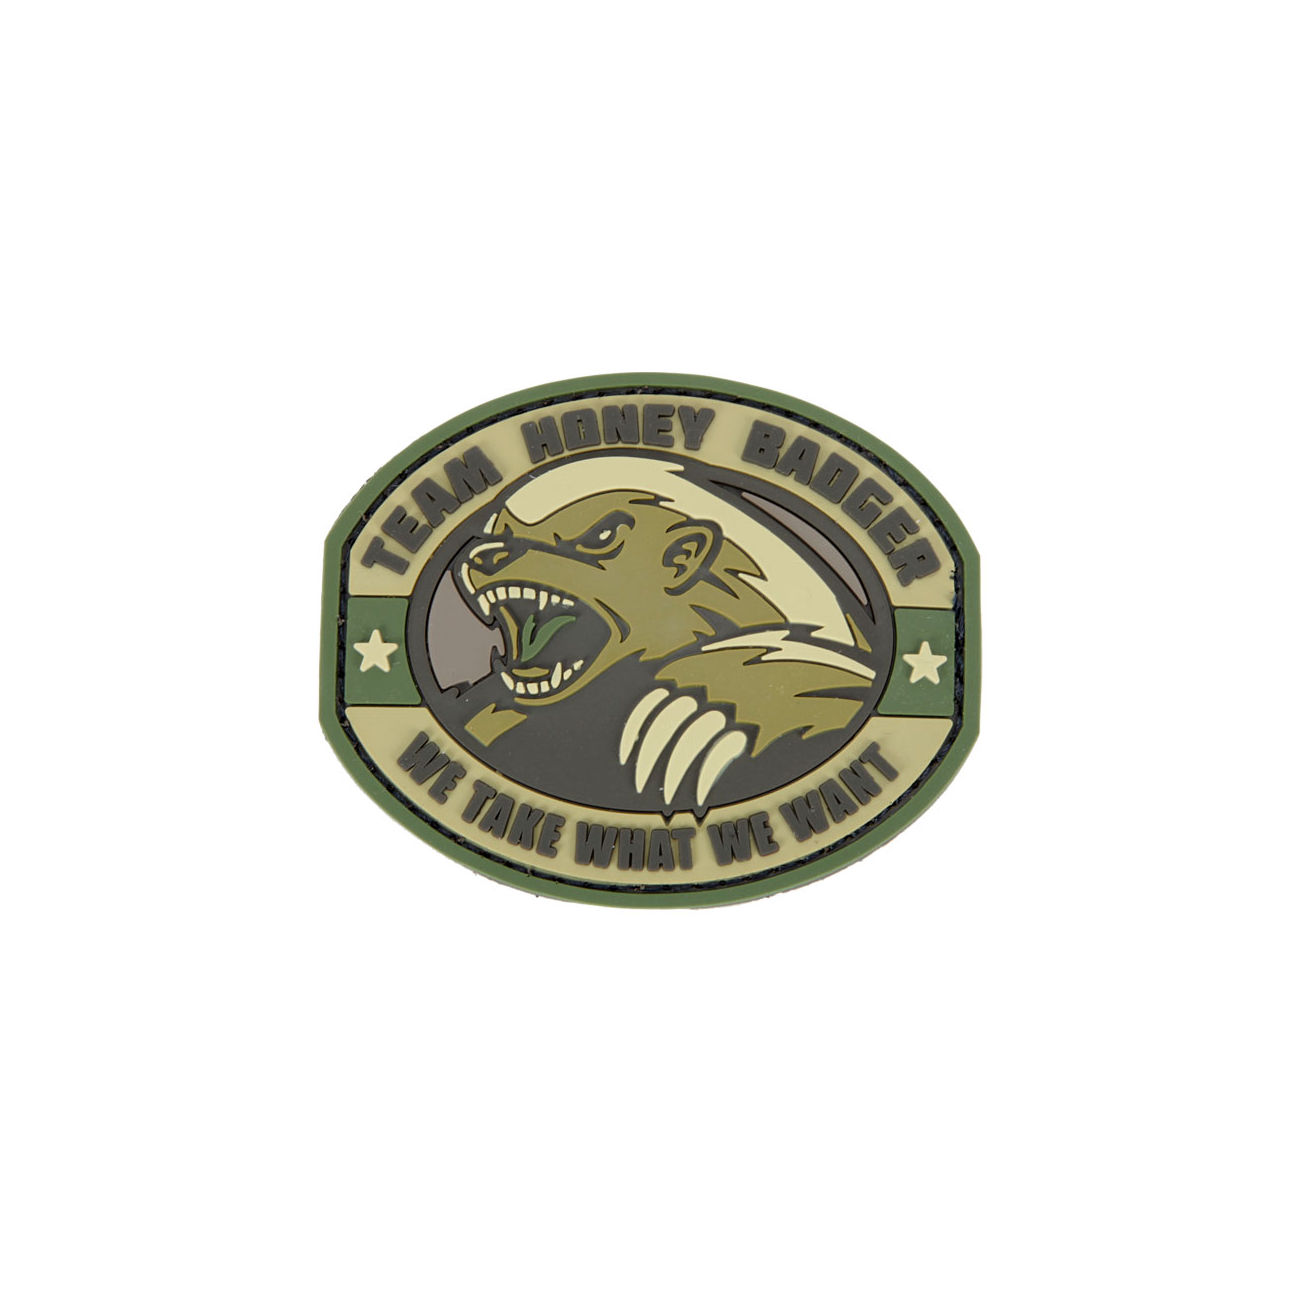 3D Rubber Patch Honney Badger multicam 0